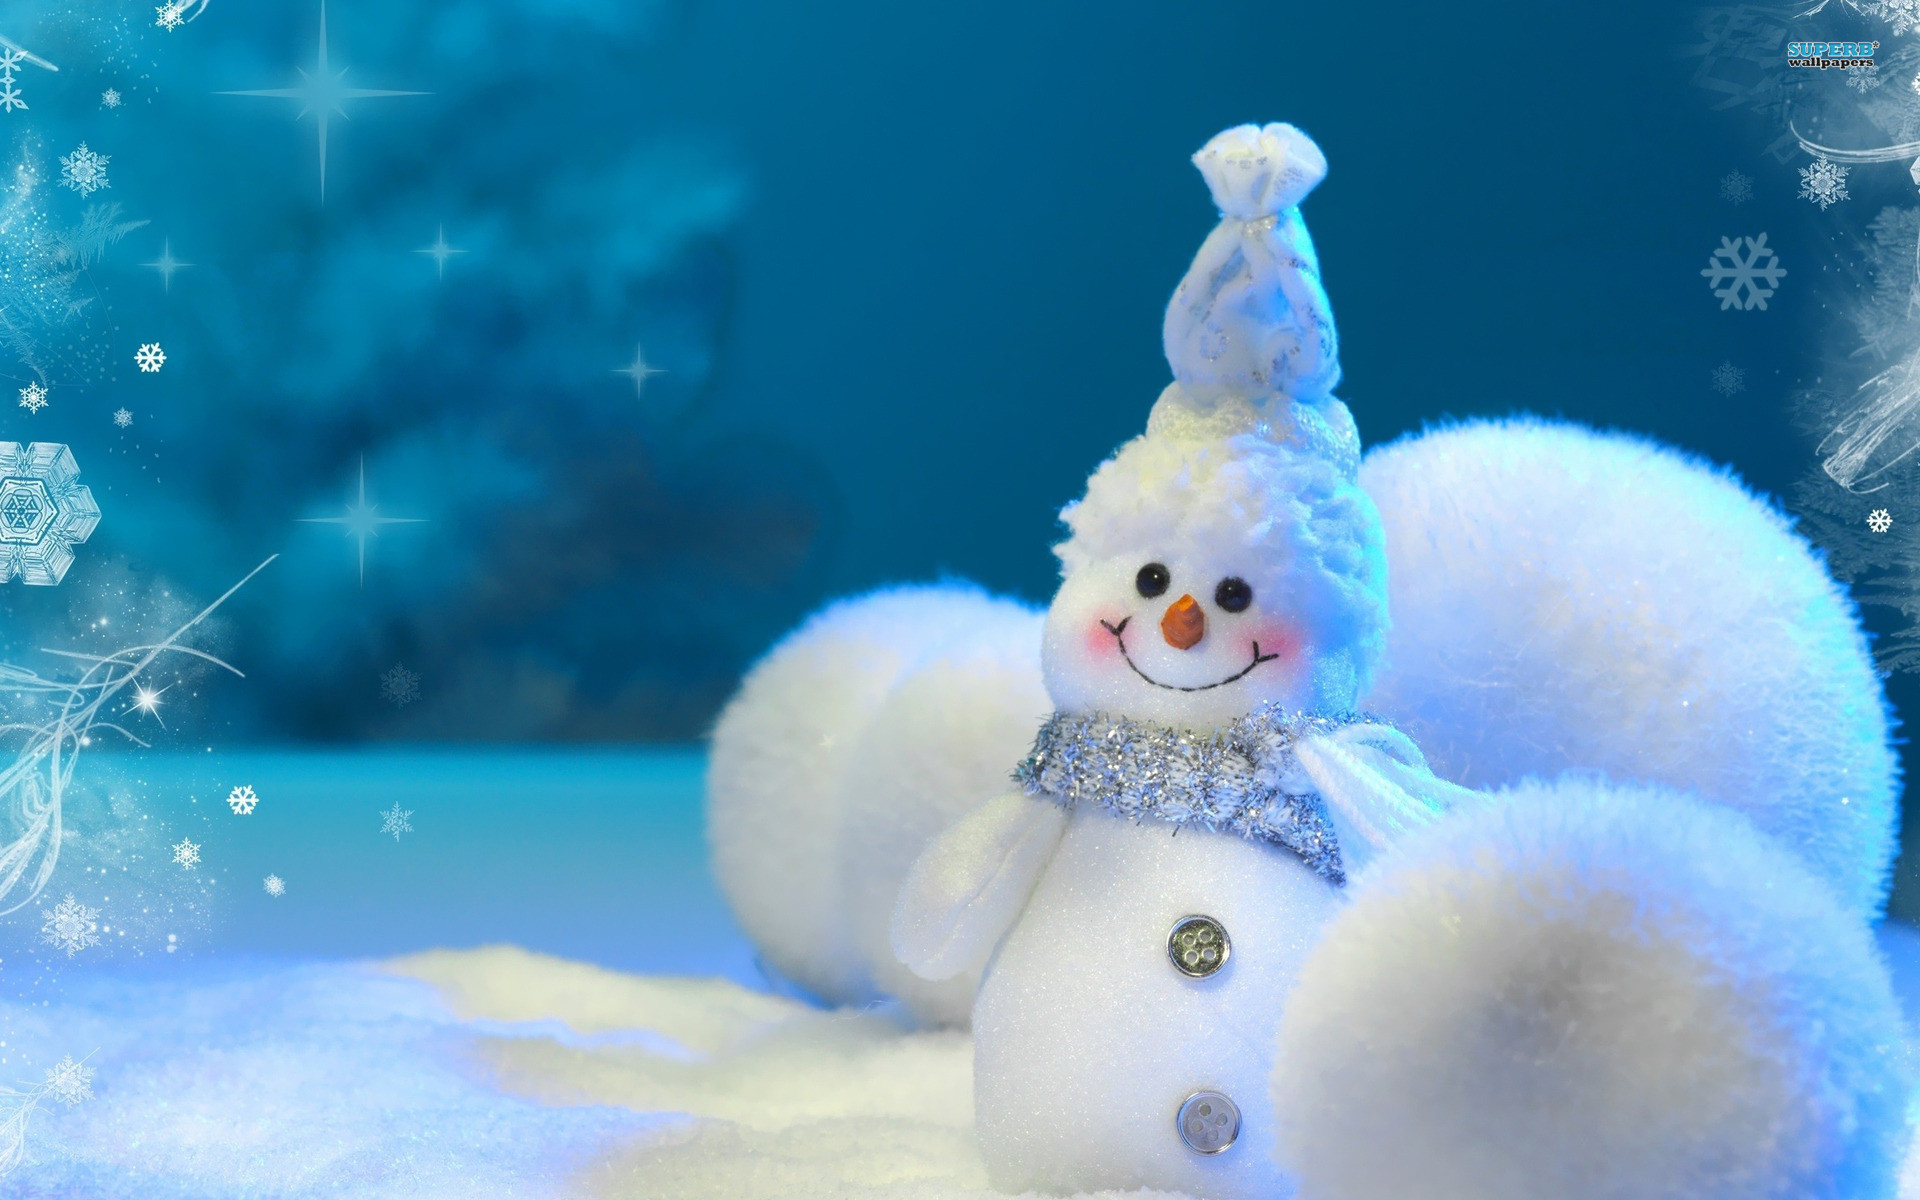 tag snowman desktop wallpapers - photo #35